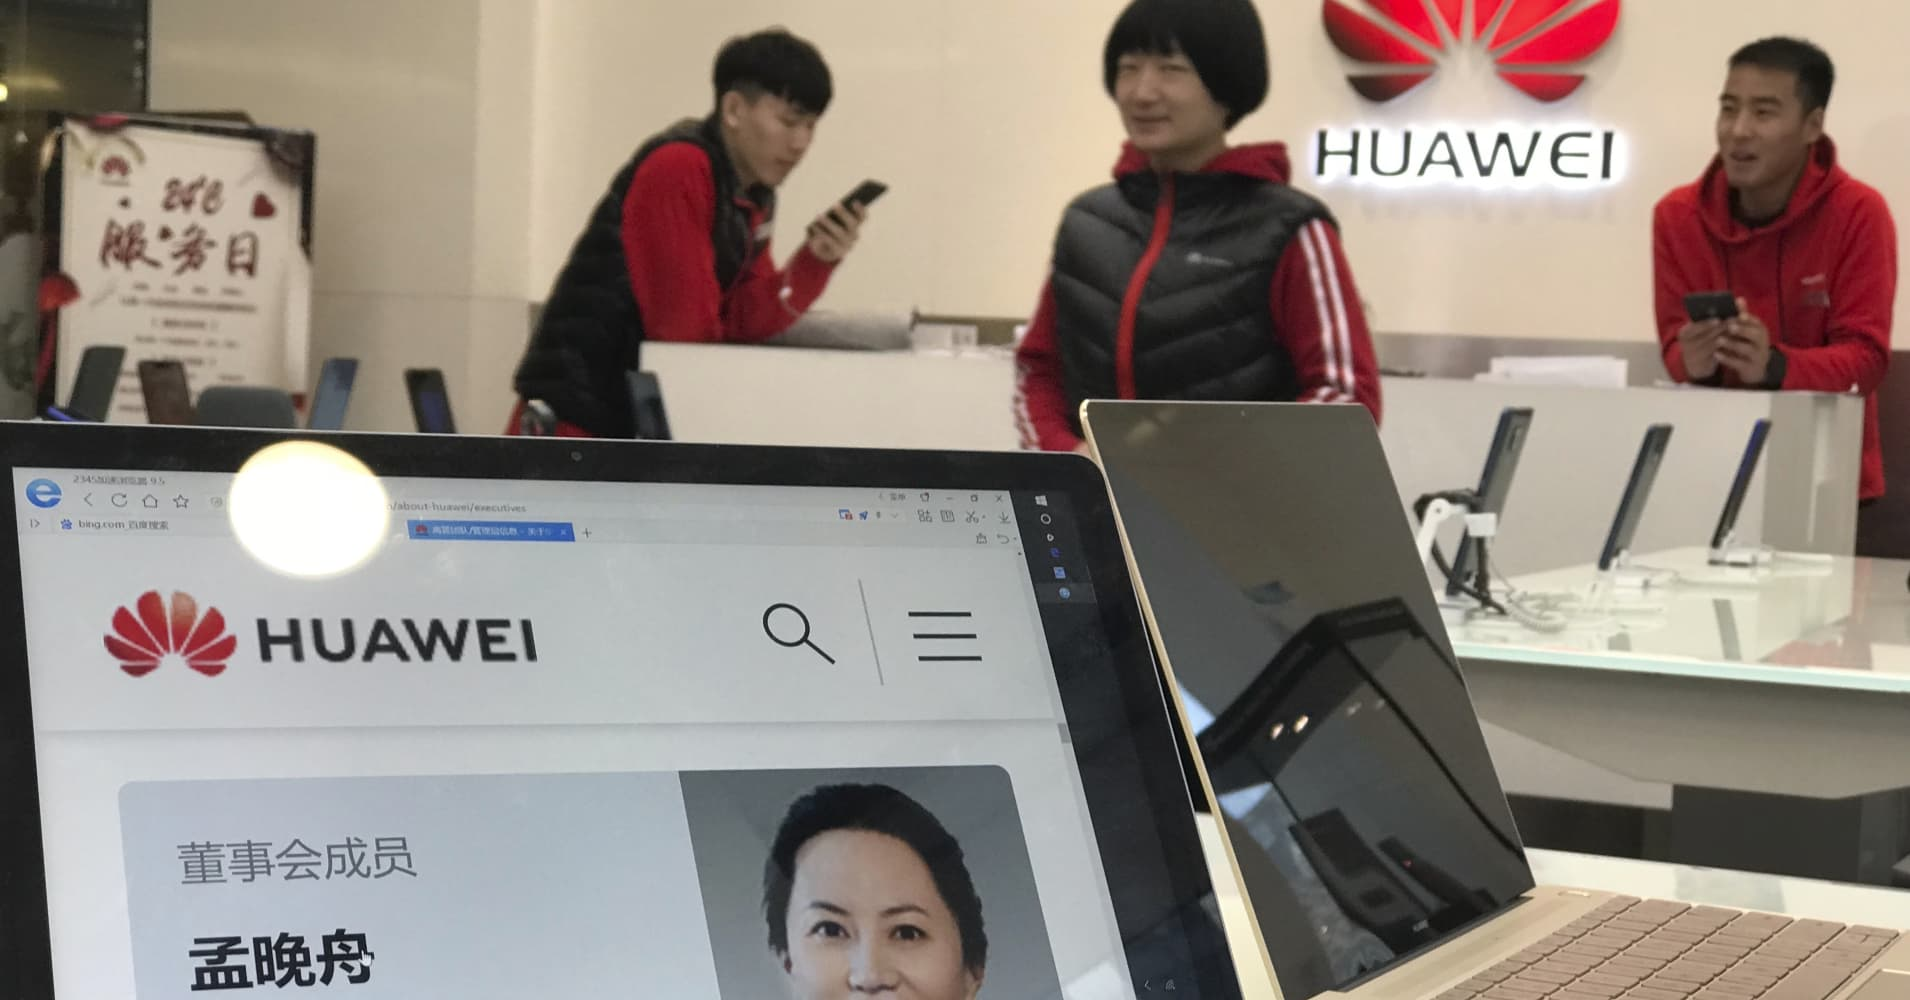 China says Canada's detention of Huawei exec is 'vile in nature'